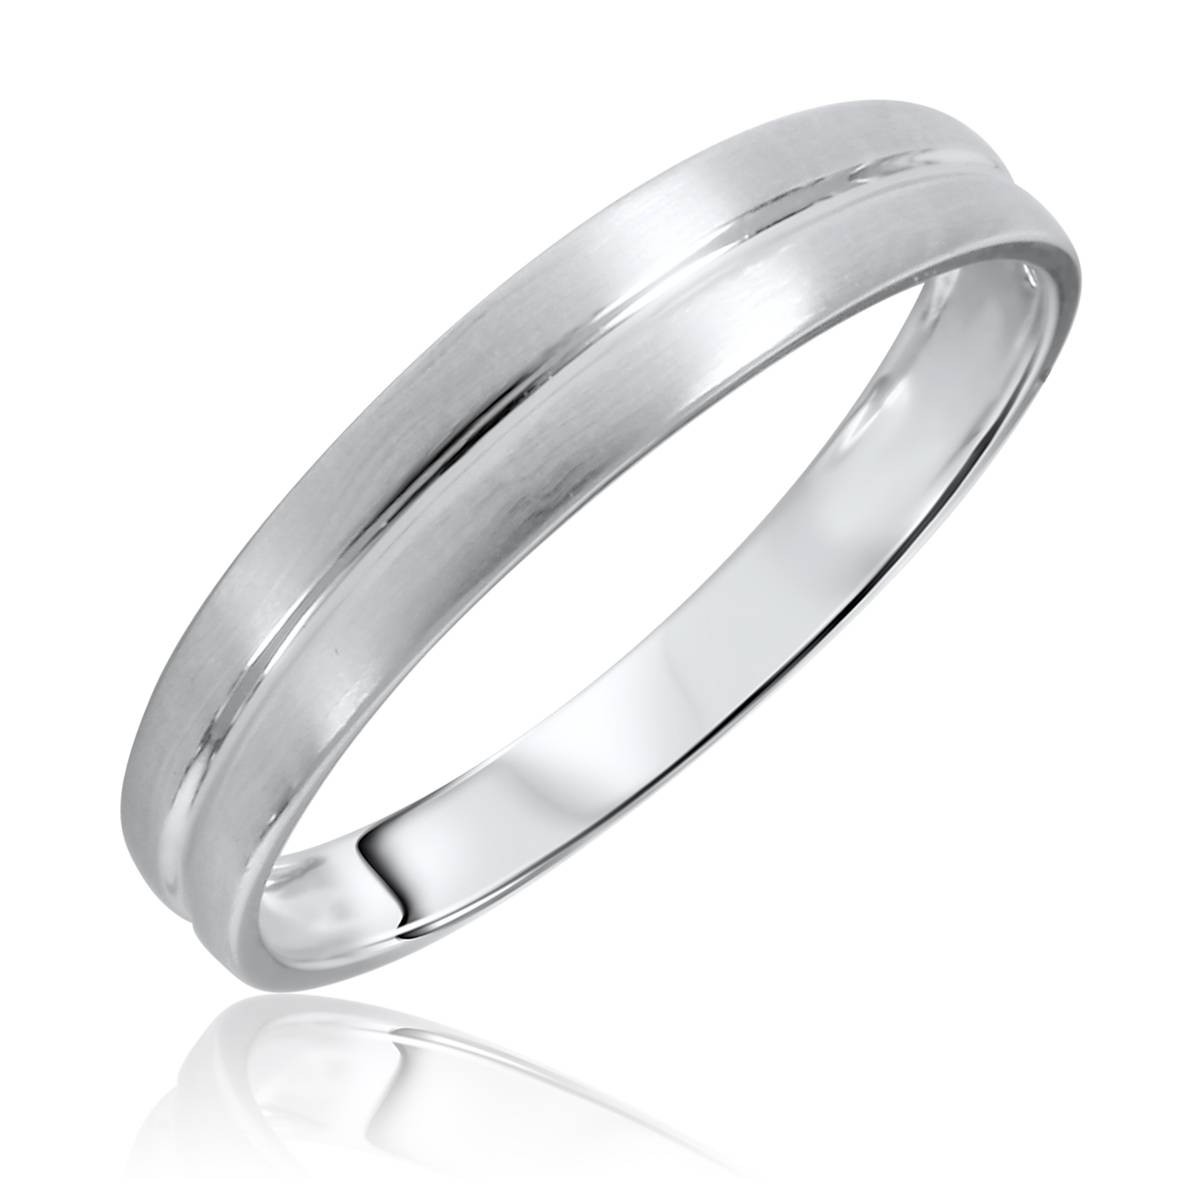 No Diamondstraditional Mens Wedding Band 14K White Gold Regarding White Gold Mens Wedding Rings (View 11 of 15)